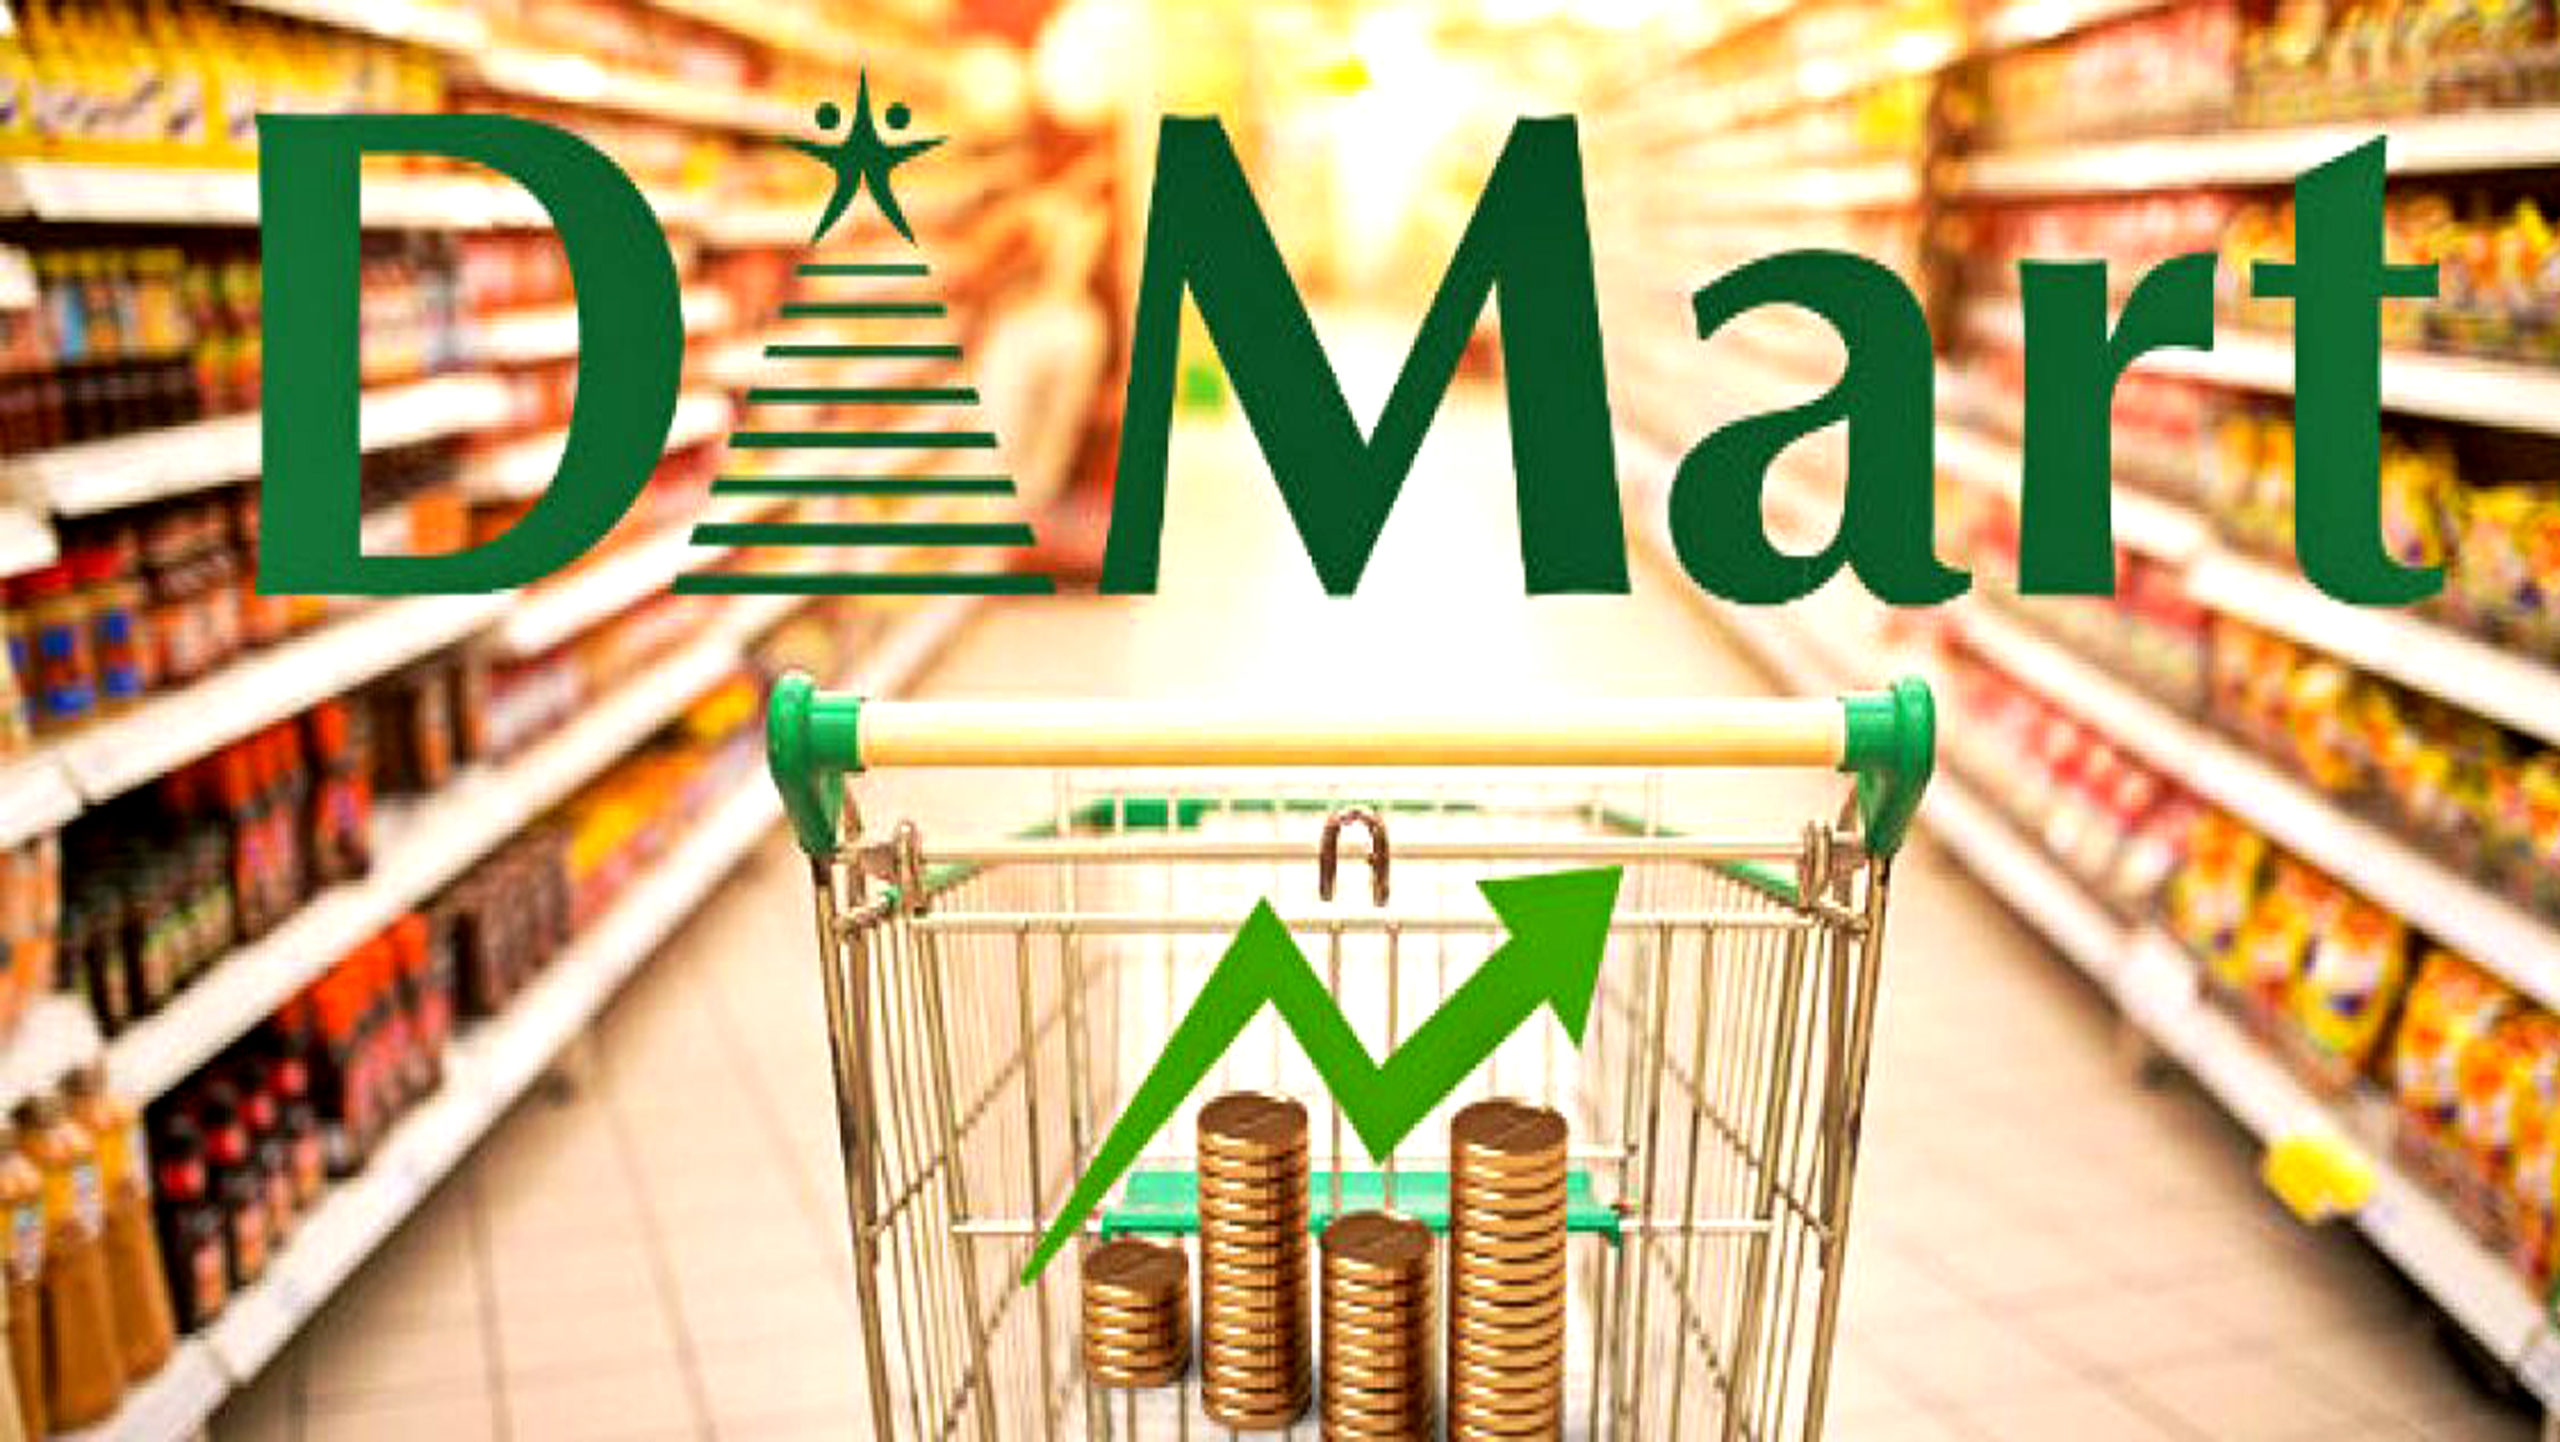 dmart supermarket business in hindi